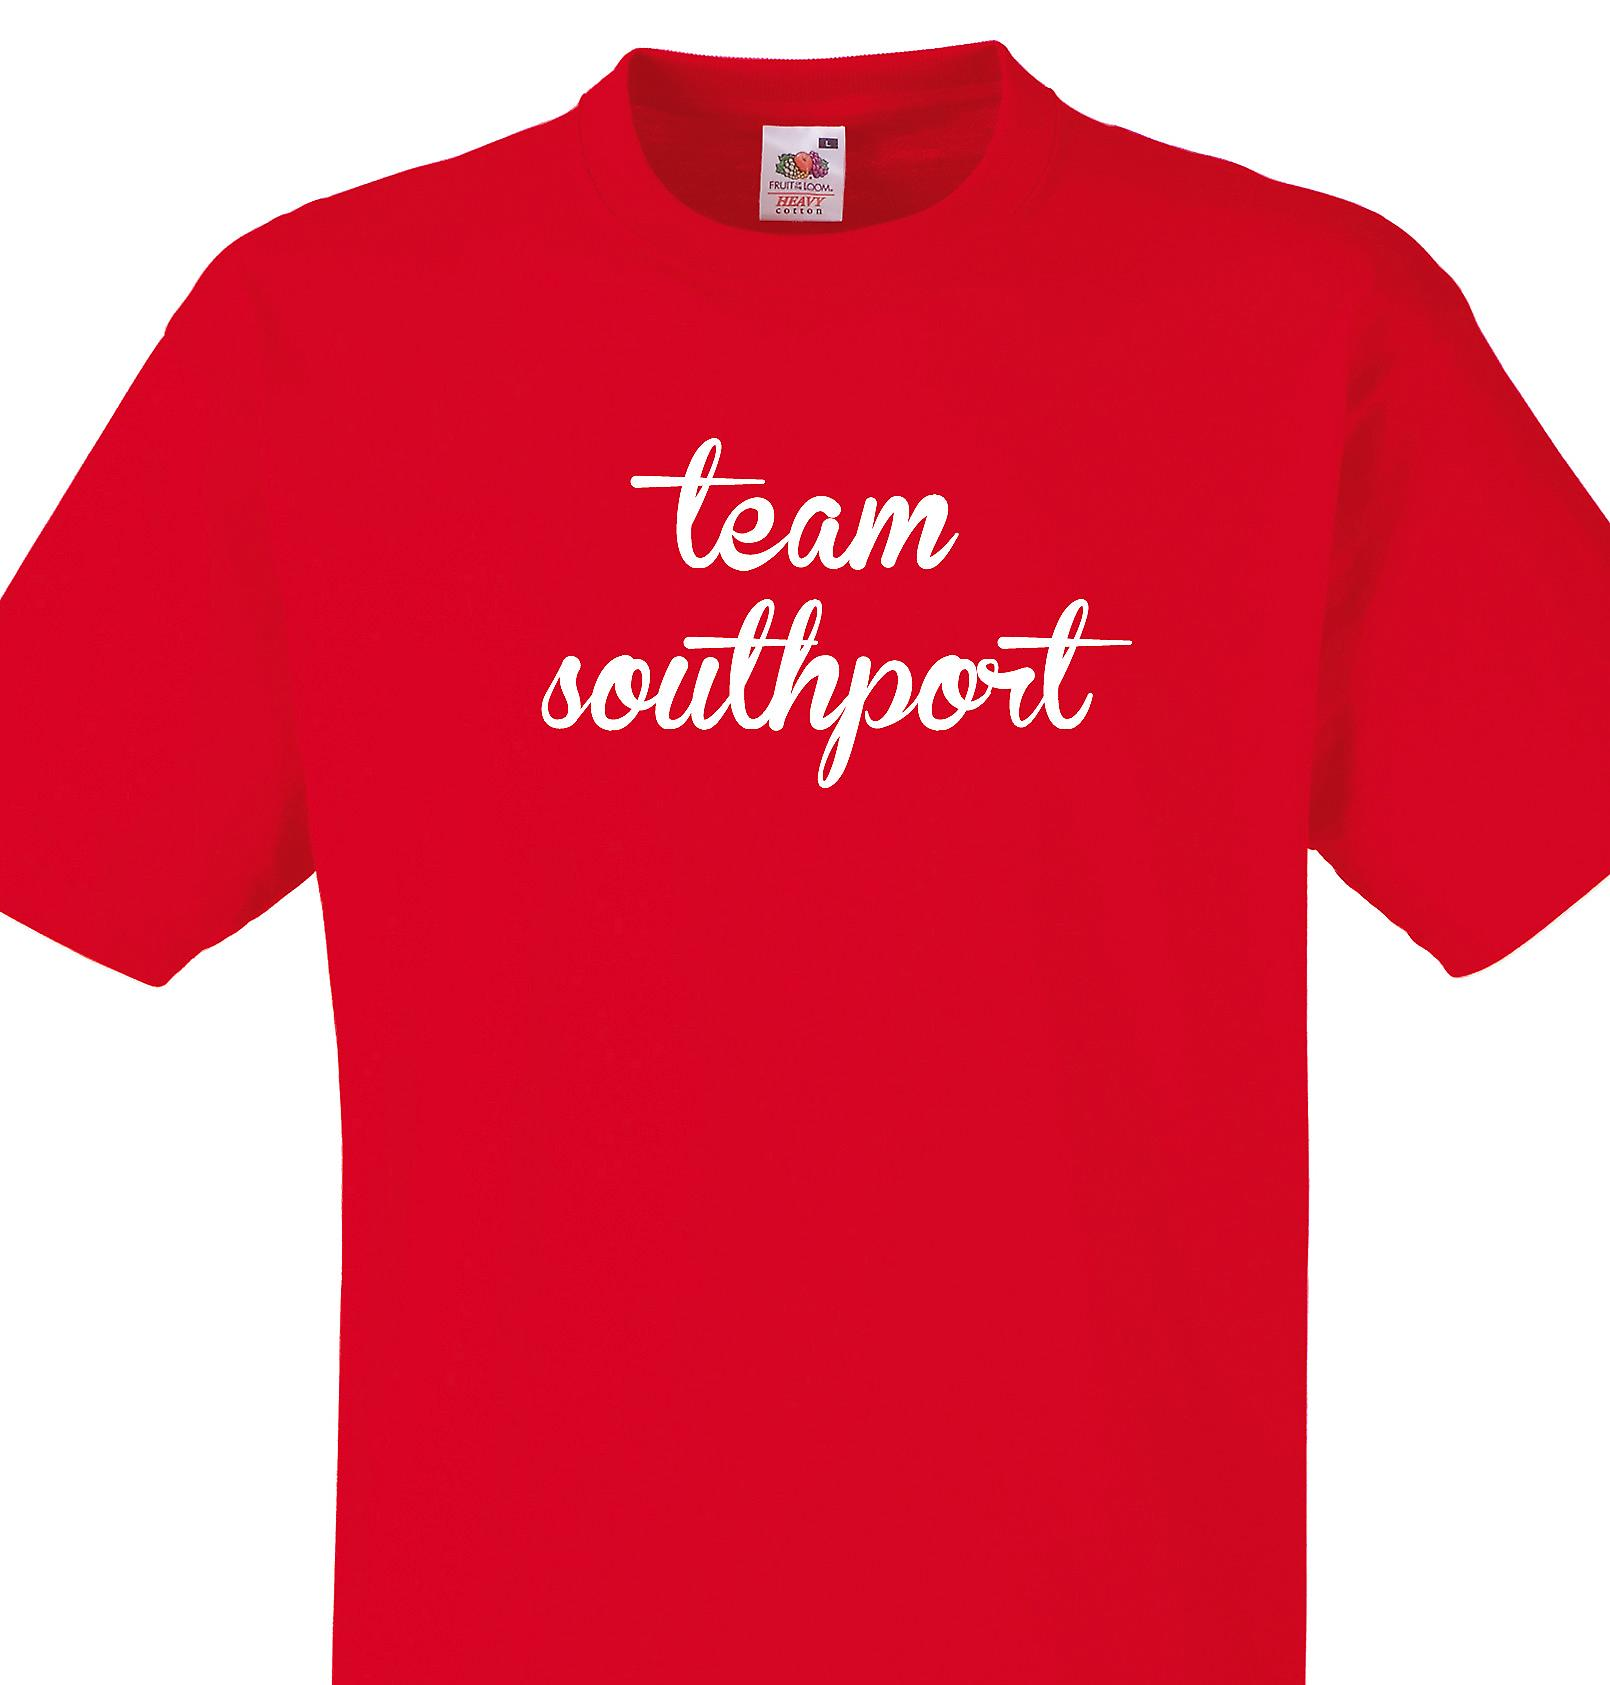 Team Southport Red T shirt